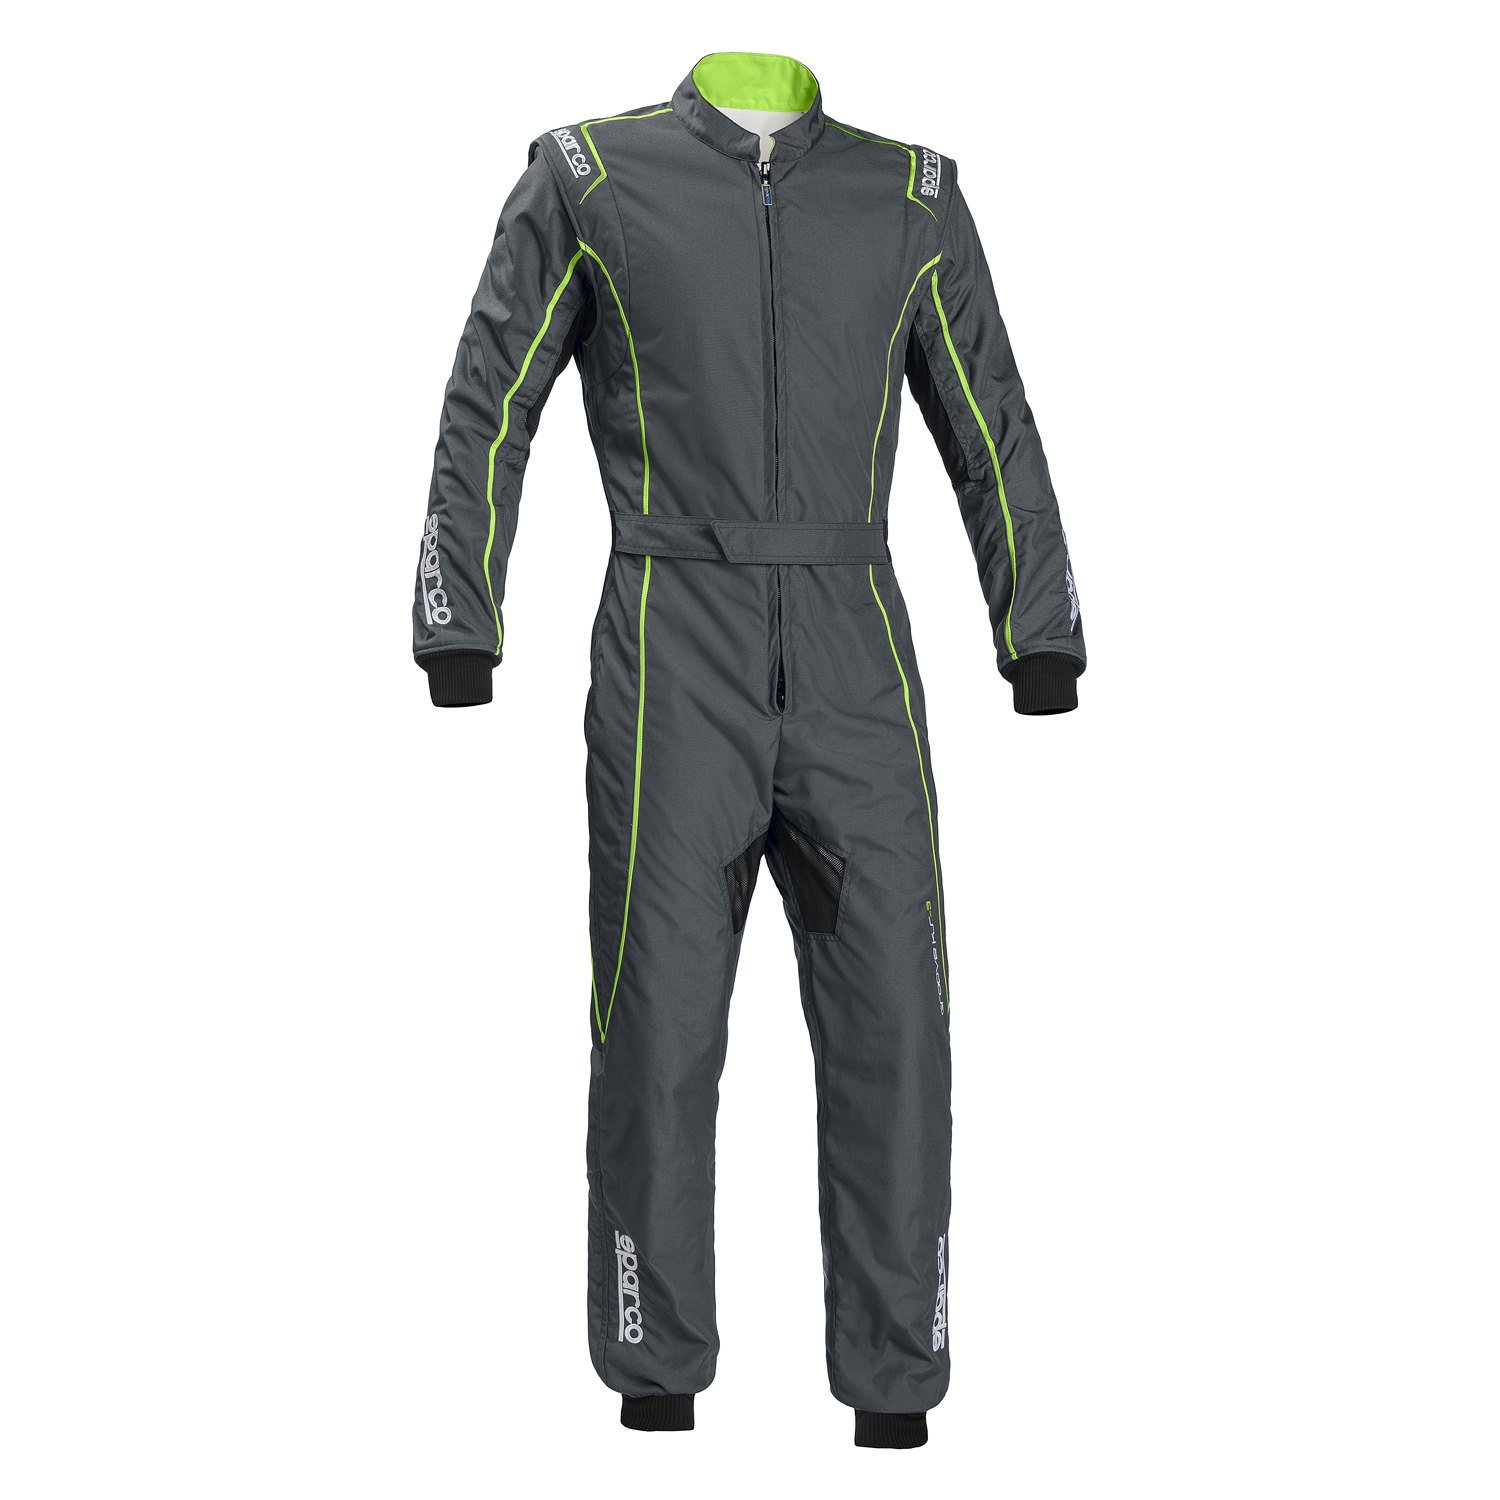 Groove KS3 Sml Gry//Grn Sparco 002334GRSVD1S Suit